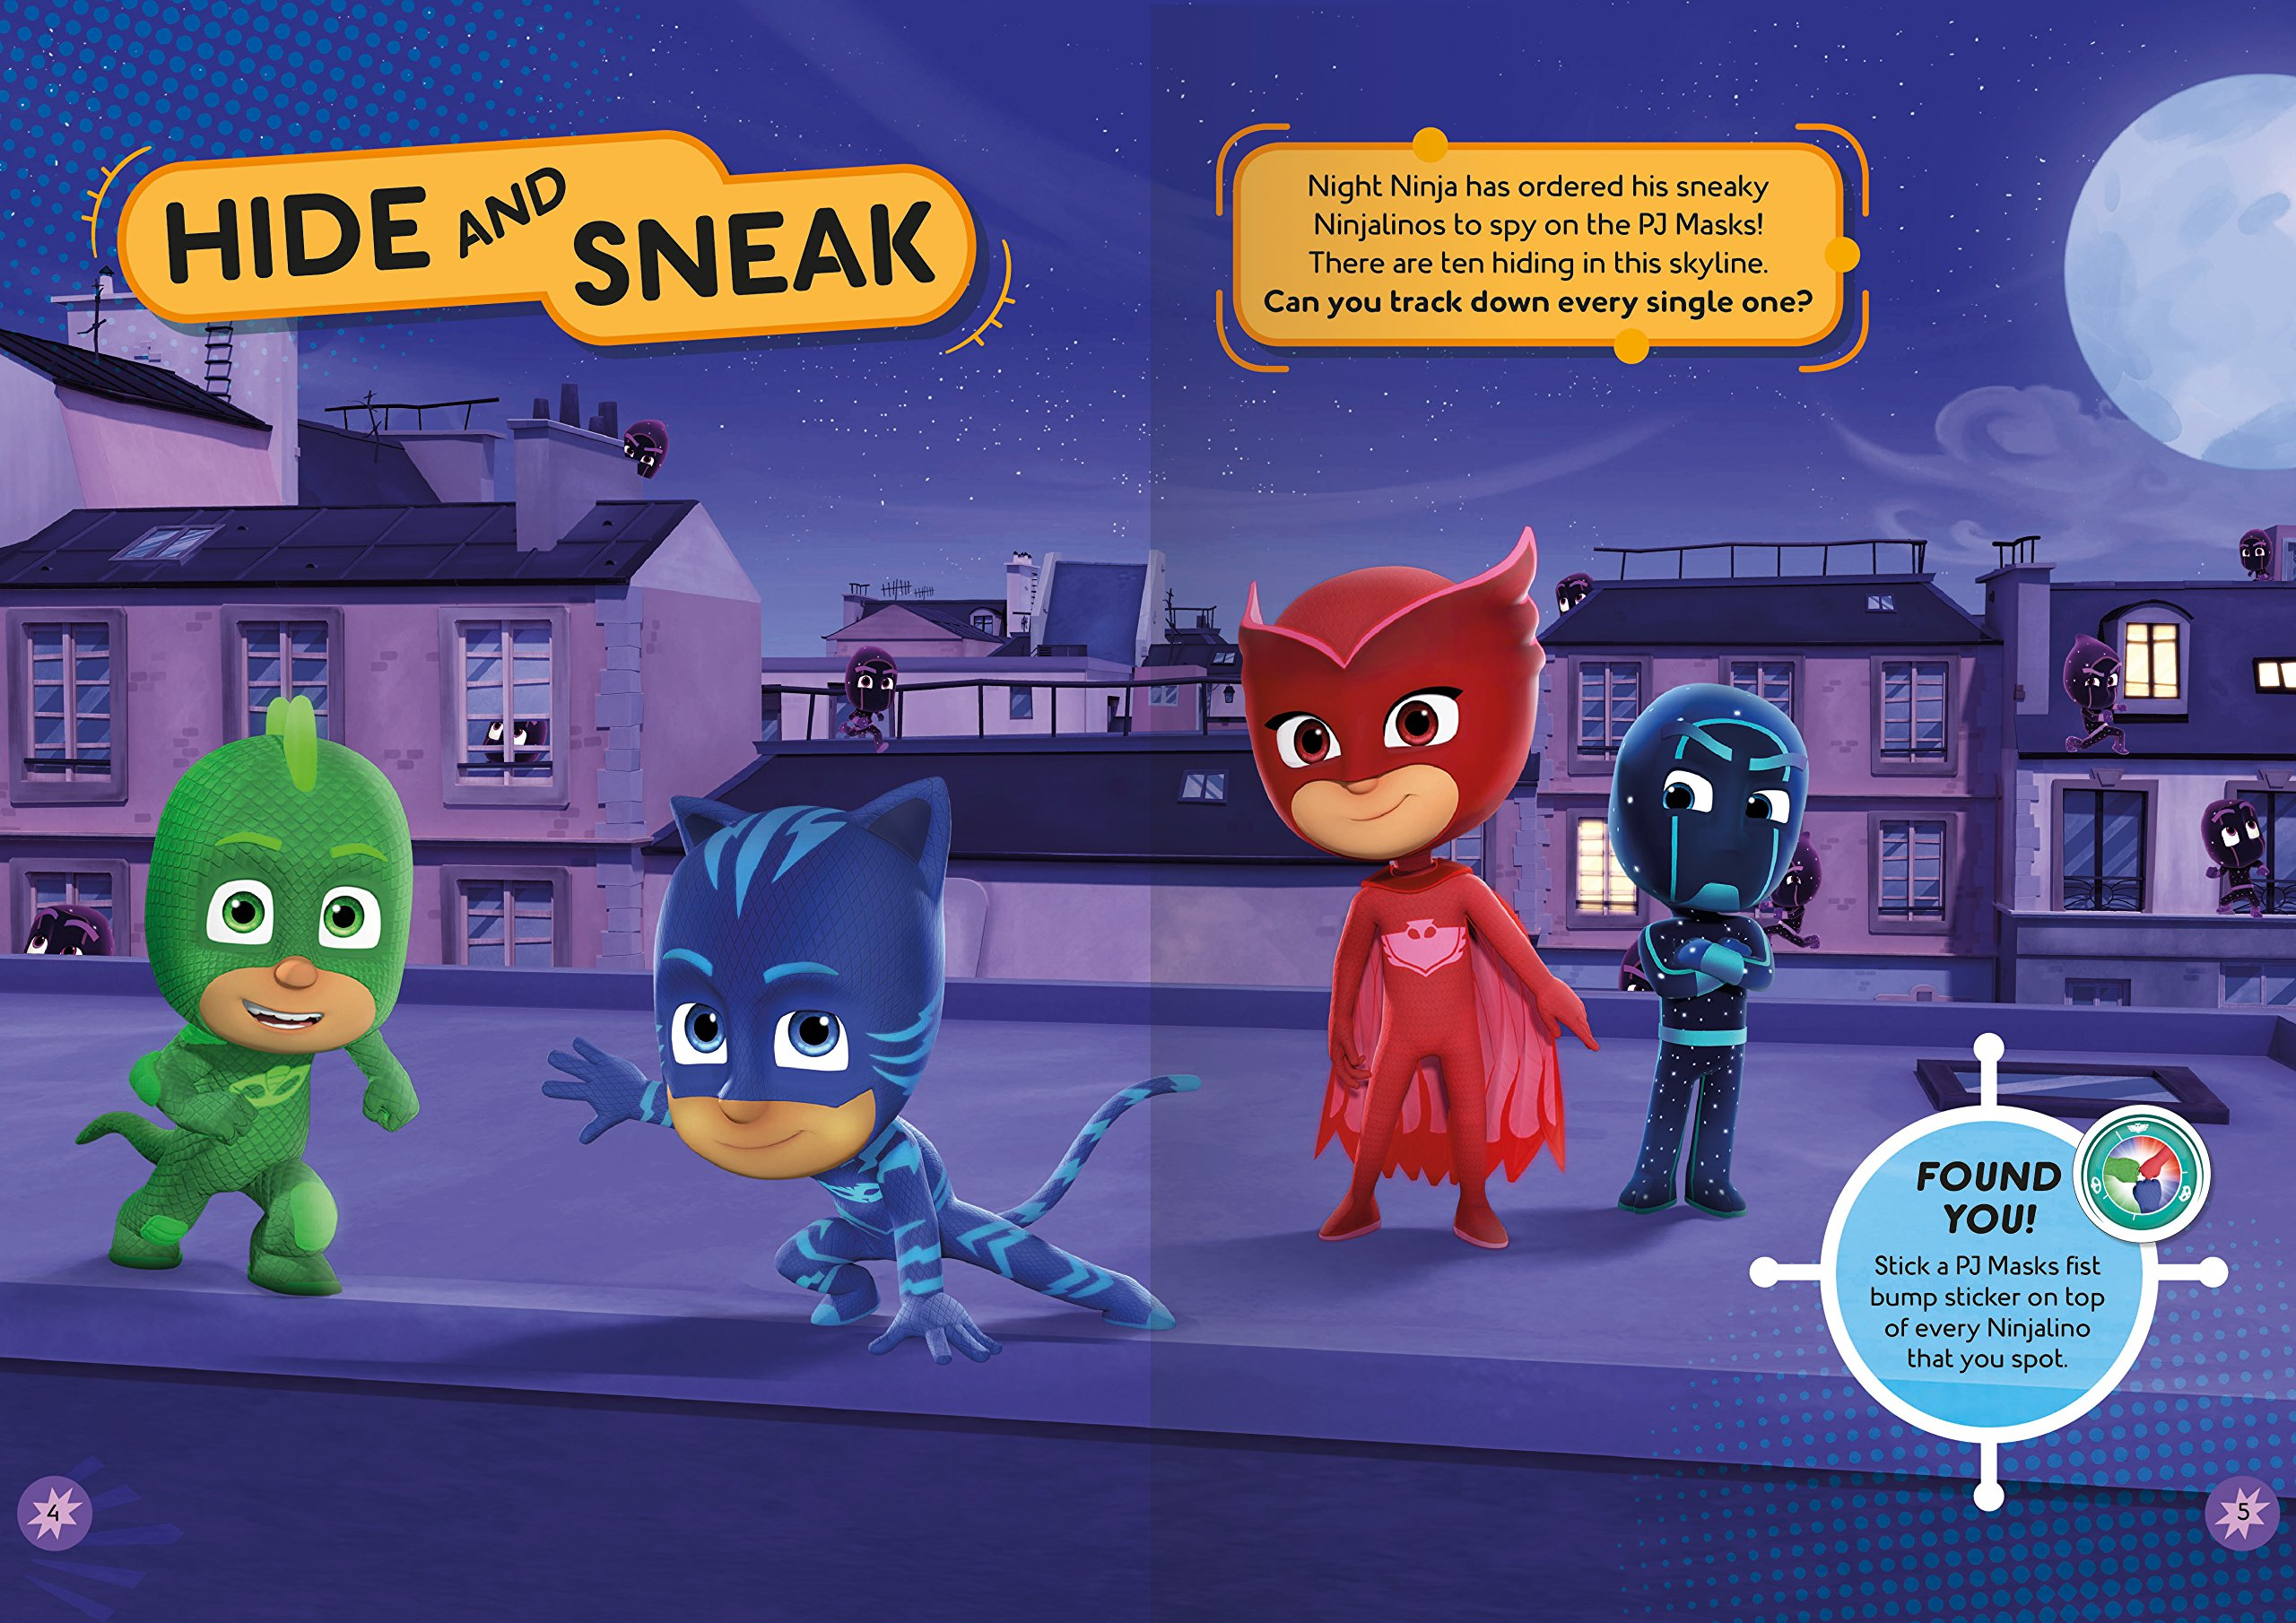 Meet the PJ Masks!: A PJ Masks sticker book: Amazon.es: Pat-a-Cake, PJ Masks: Libros en idiomas extranjeros